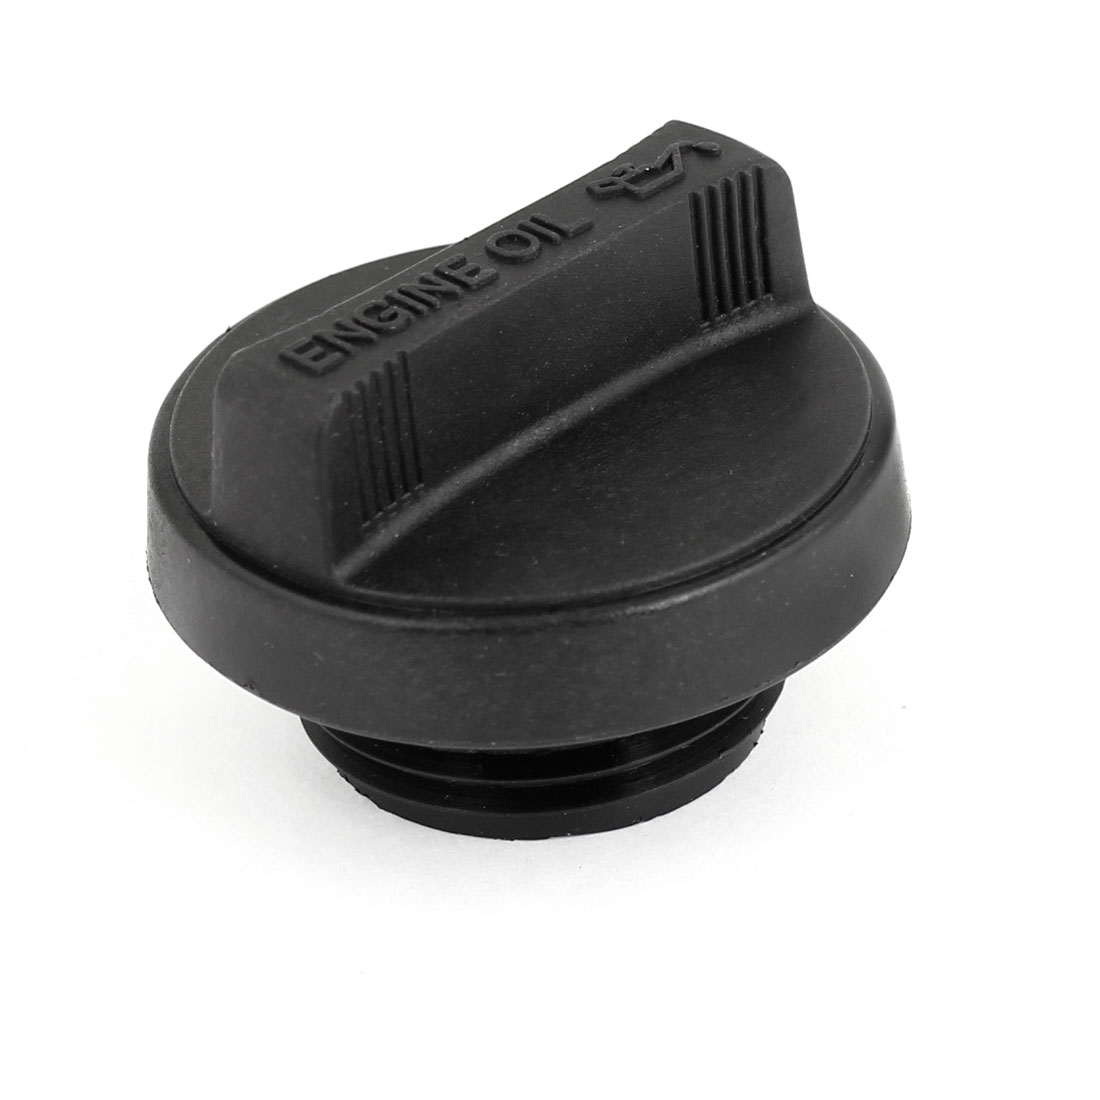 12180-21030 Vehicle Car Engine Oil Cap Repair Accessory